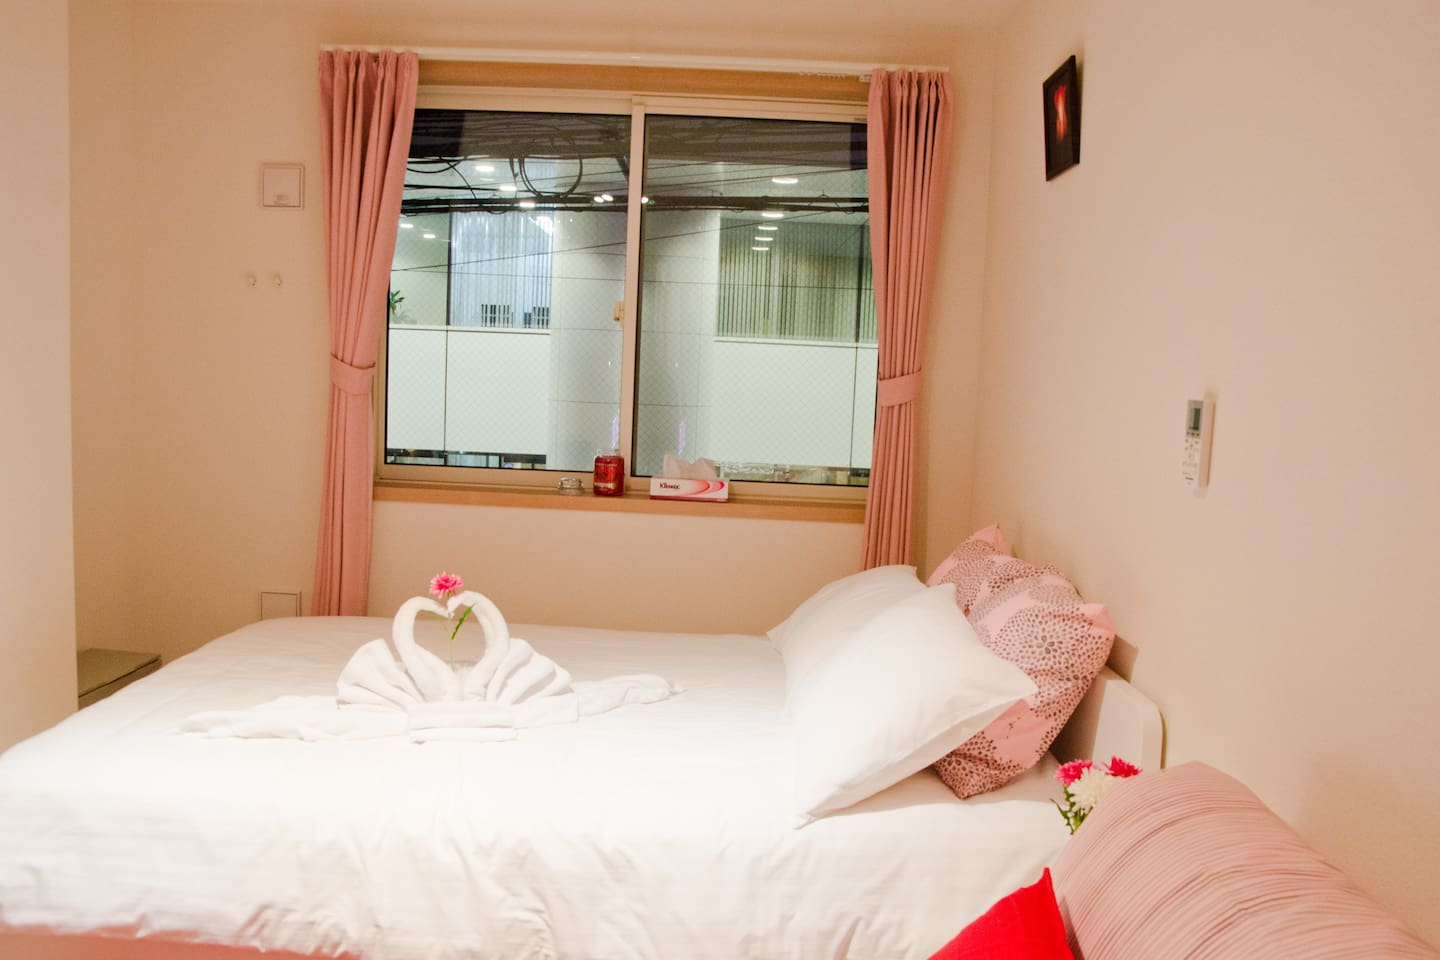 Size of the room 24m2 Bed and sofa bed are both double bed